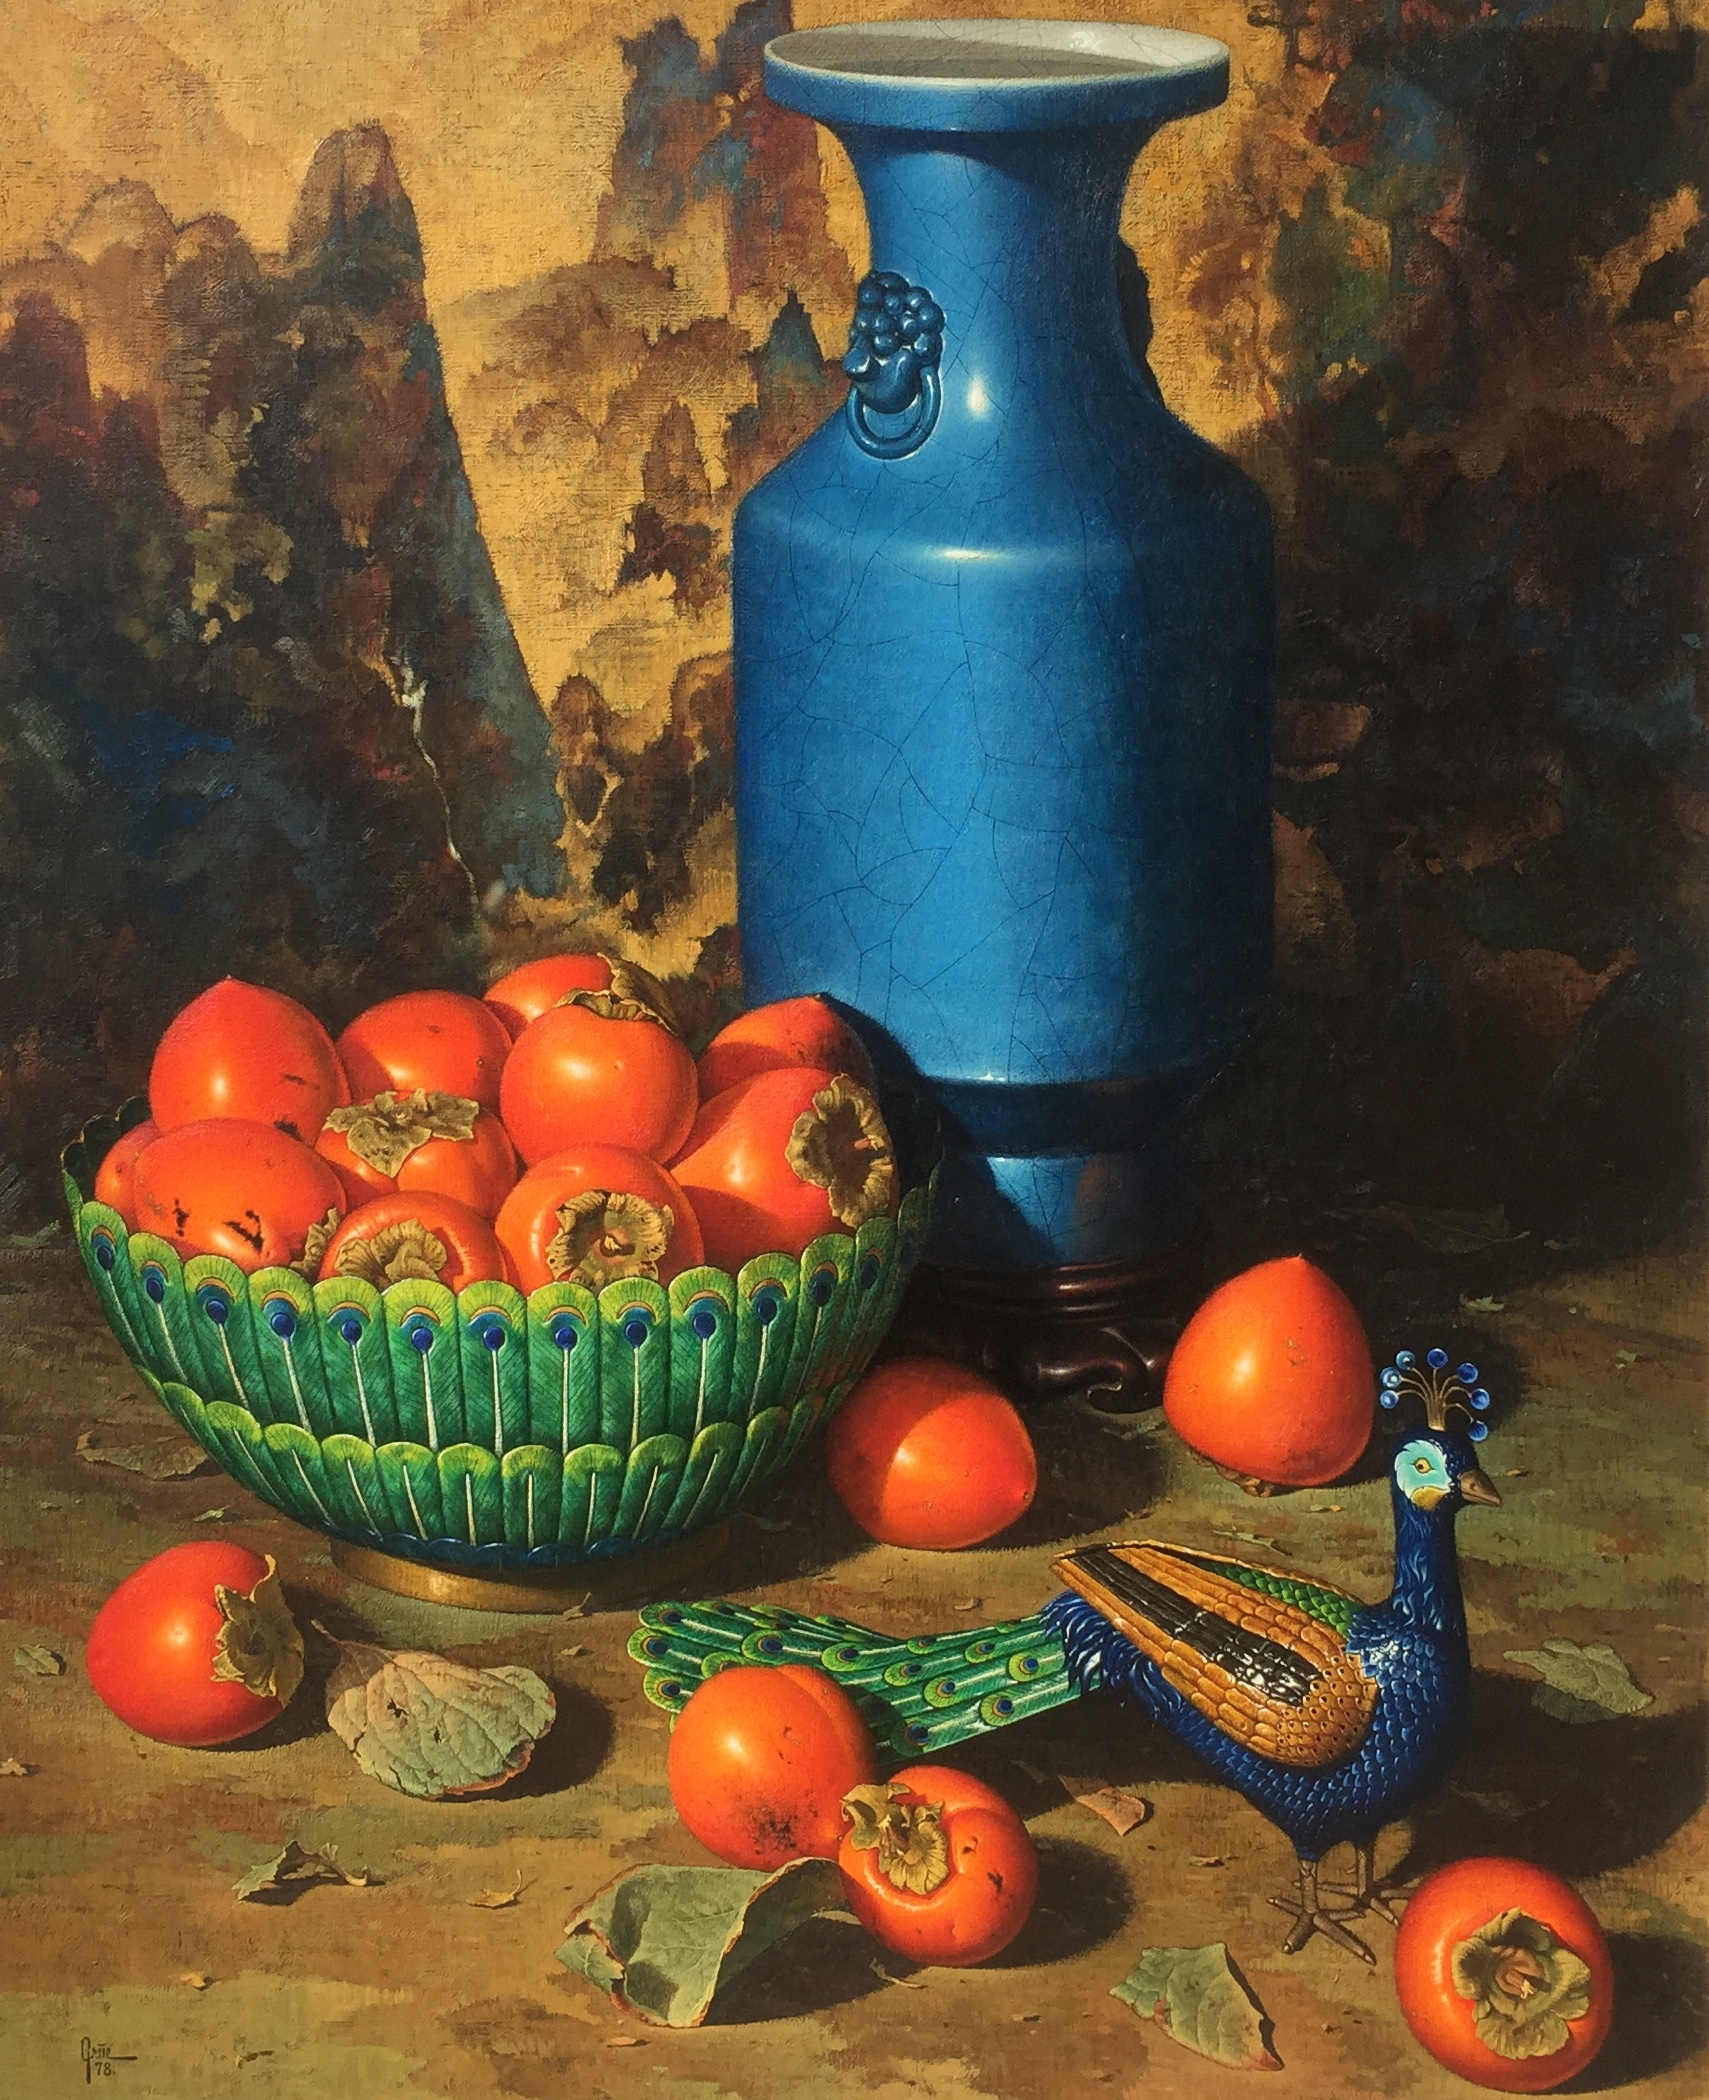 Persimmons and Cloisonné Peacock